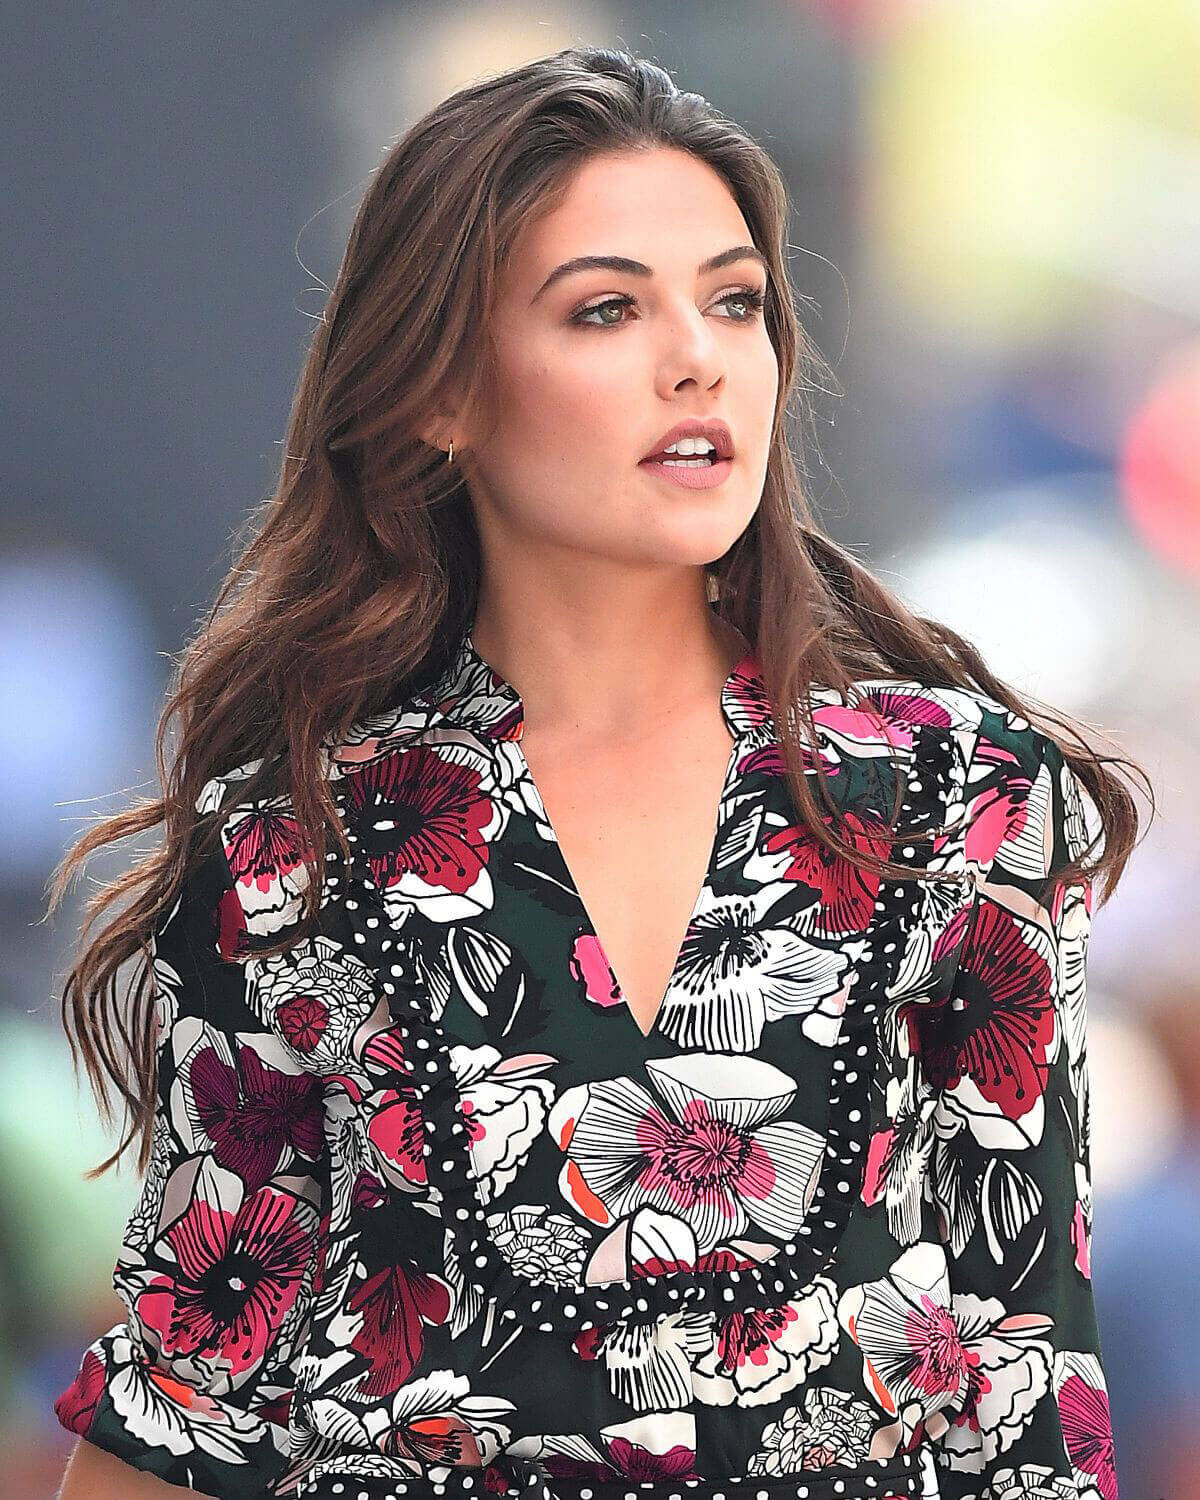 Stunning And Surprising New Looks: Danielle Campbell Stunning Look In Short Dress Out And